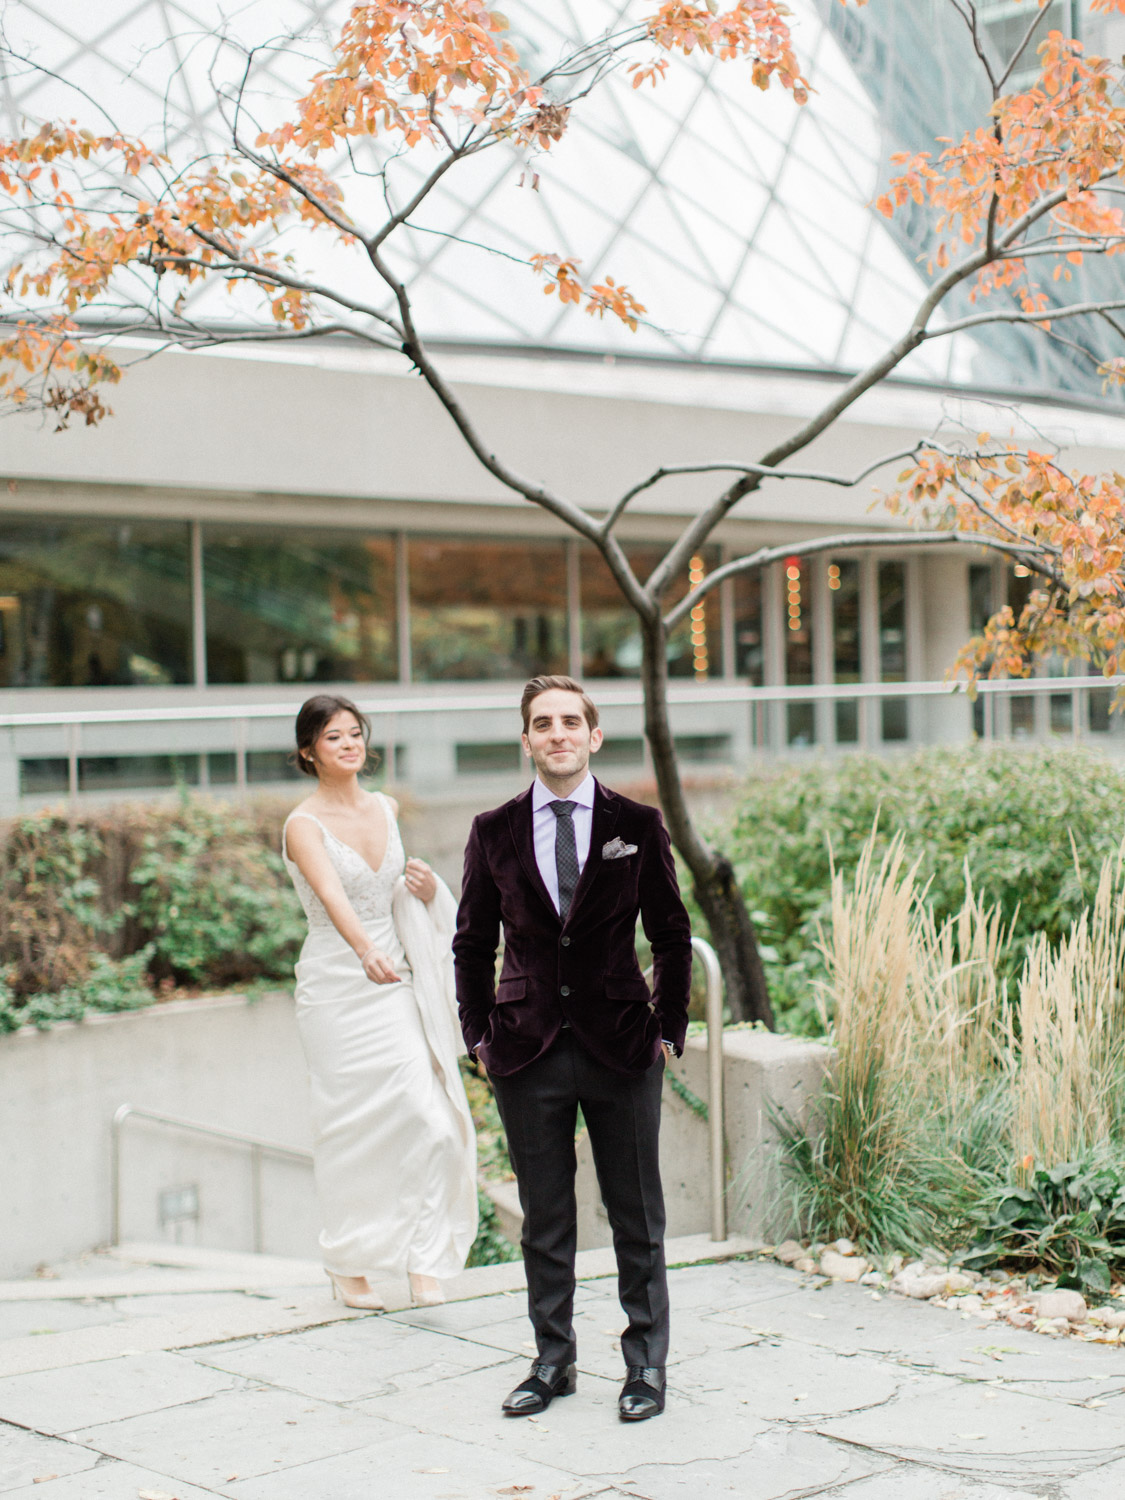 -	Candid photograph of first look between bride and the groom at Italian winter wedding.  Captured by Toronto wedding photographer Corynn Fowler Photography.